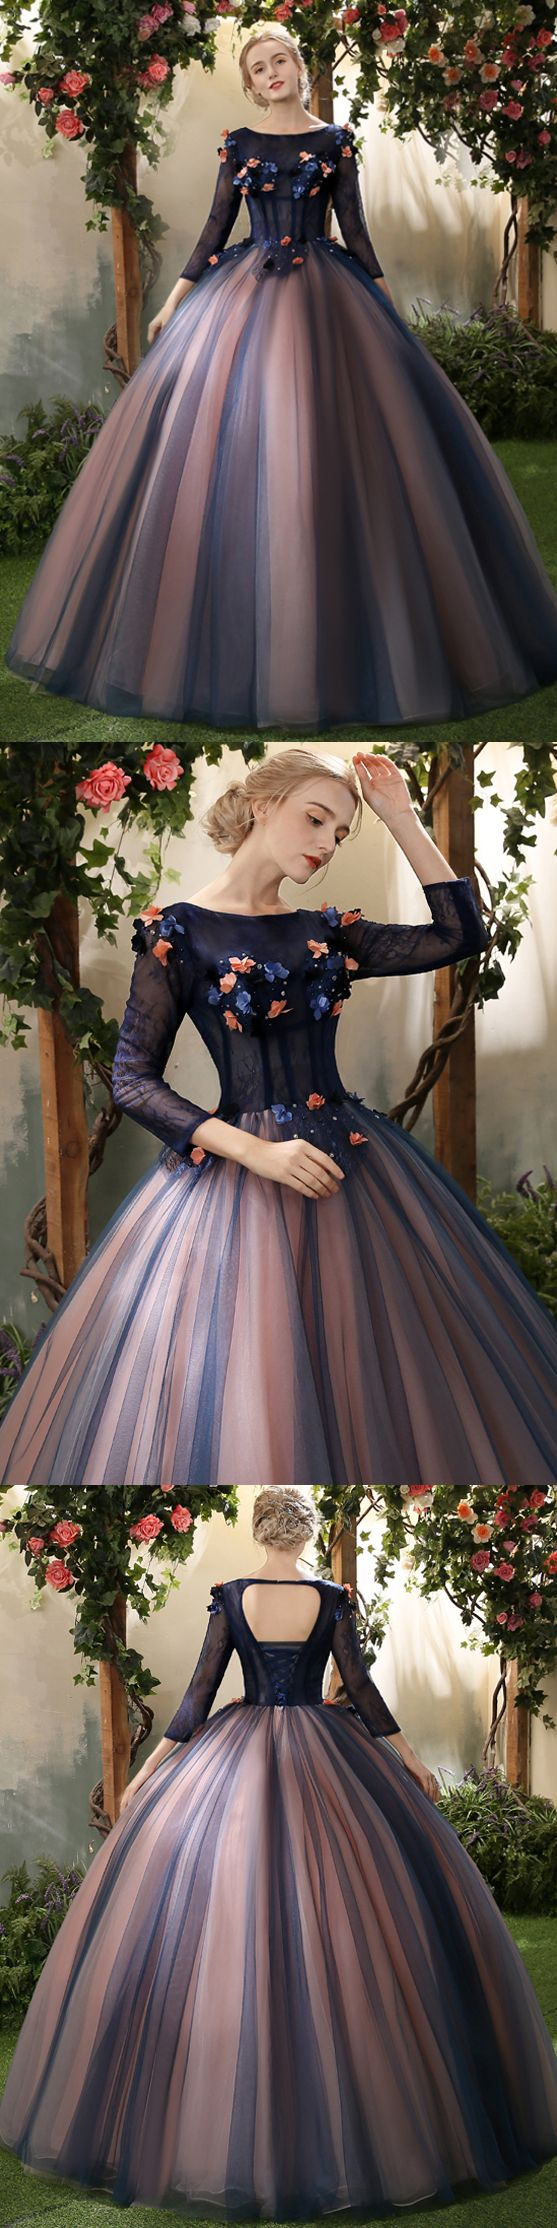 640 best Kleider ♡ images on Pinterest | Party outfits, Formal prom ...